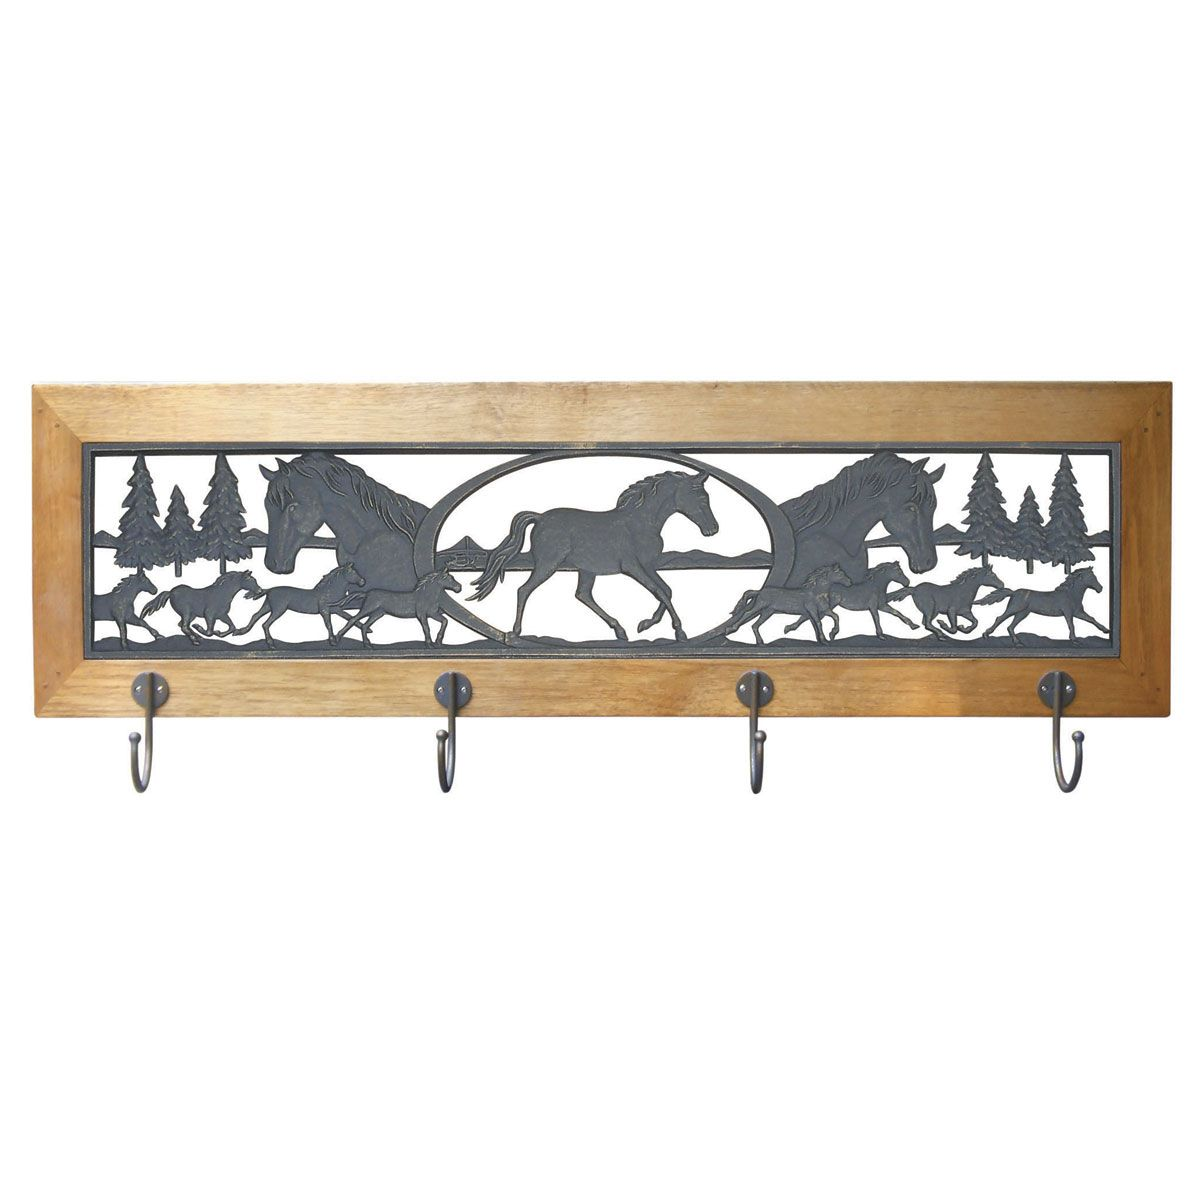 Horse coat rack for our mustang garage garageshed ideas